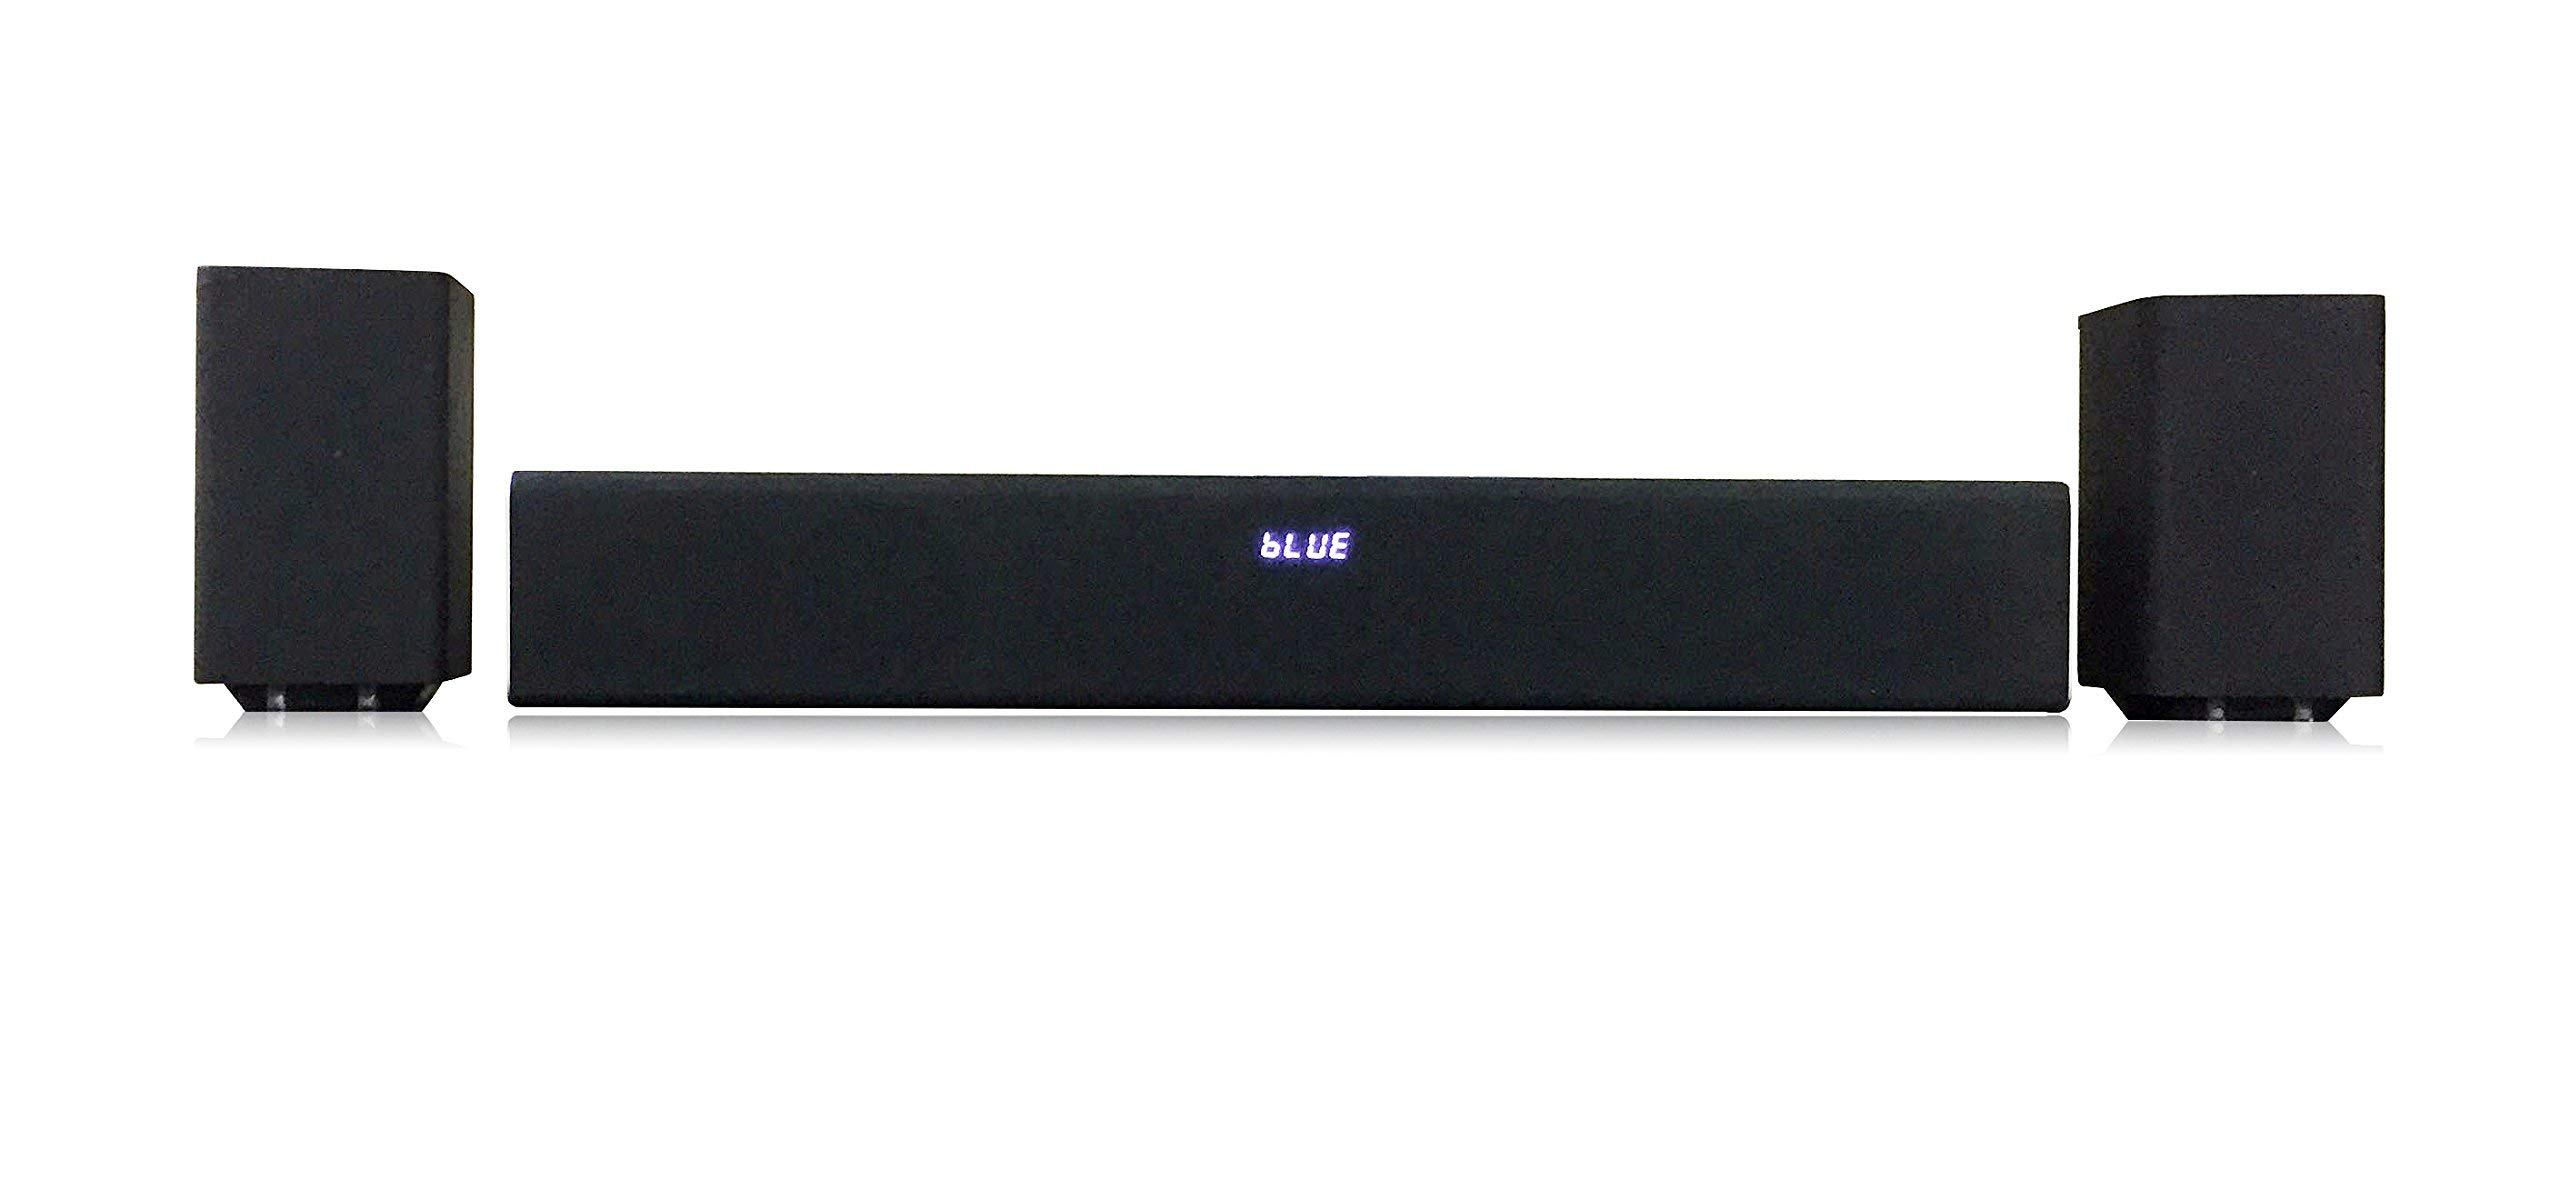 CURPSB3724W Detachable 2 1 Channel Bluetooth Subwoofer